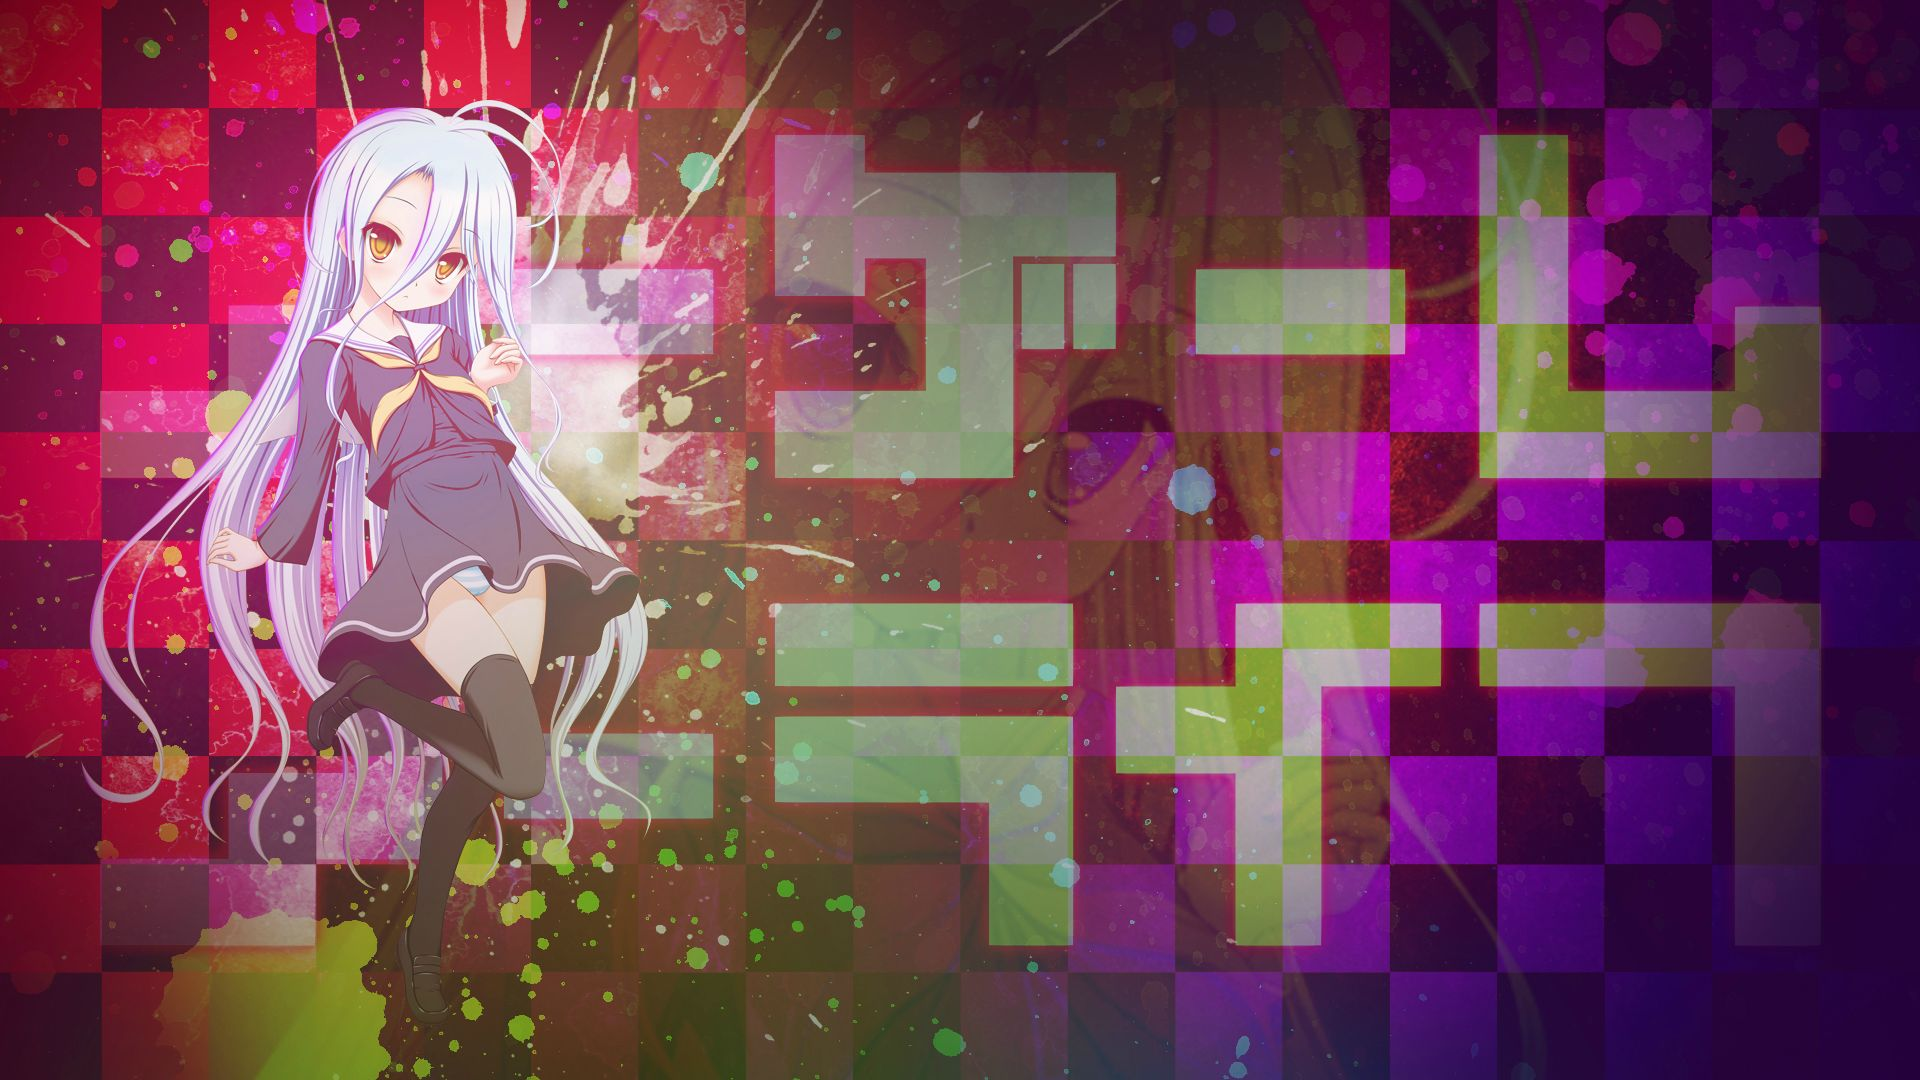 Shiro Background Shiro No Game No Life 1537698 Hd Wallpaper